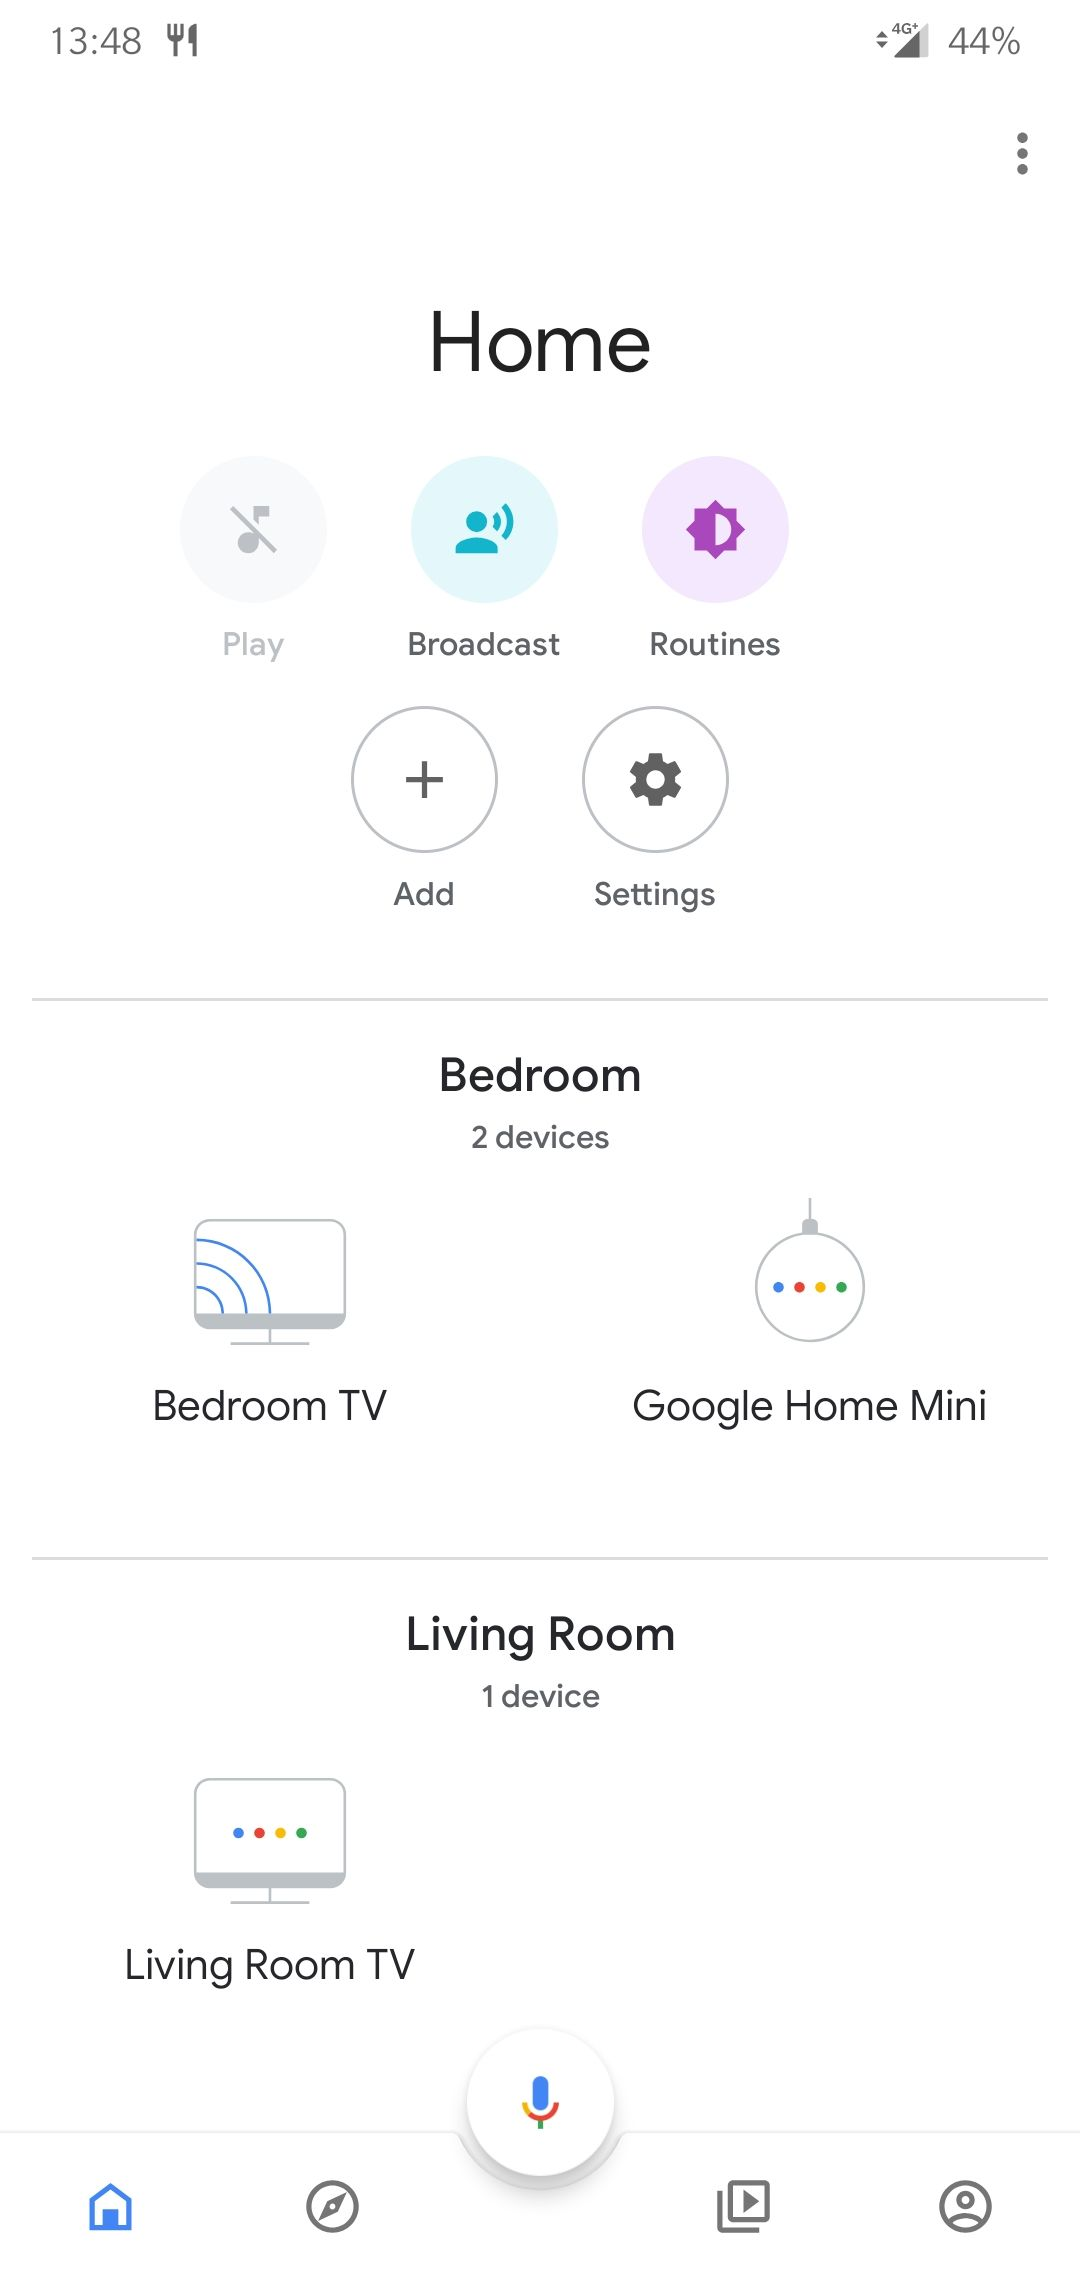 The new Google Home app update is ridiculously off center